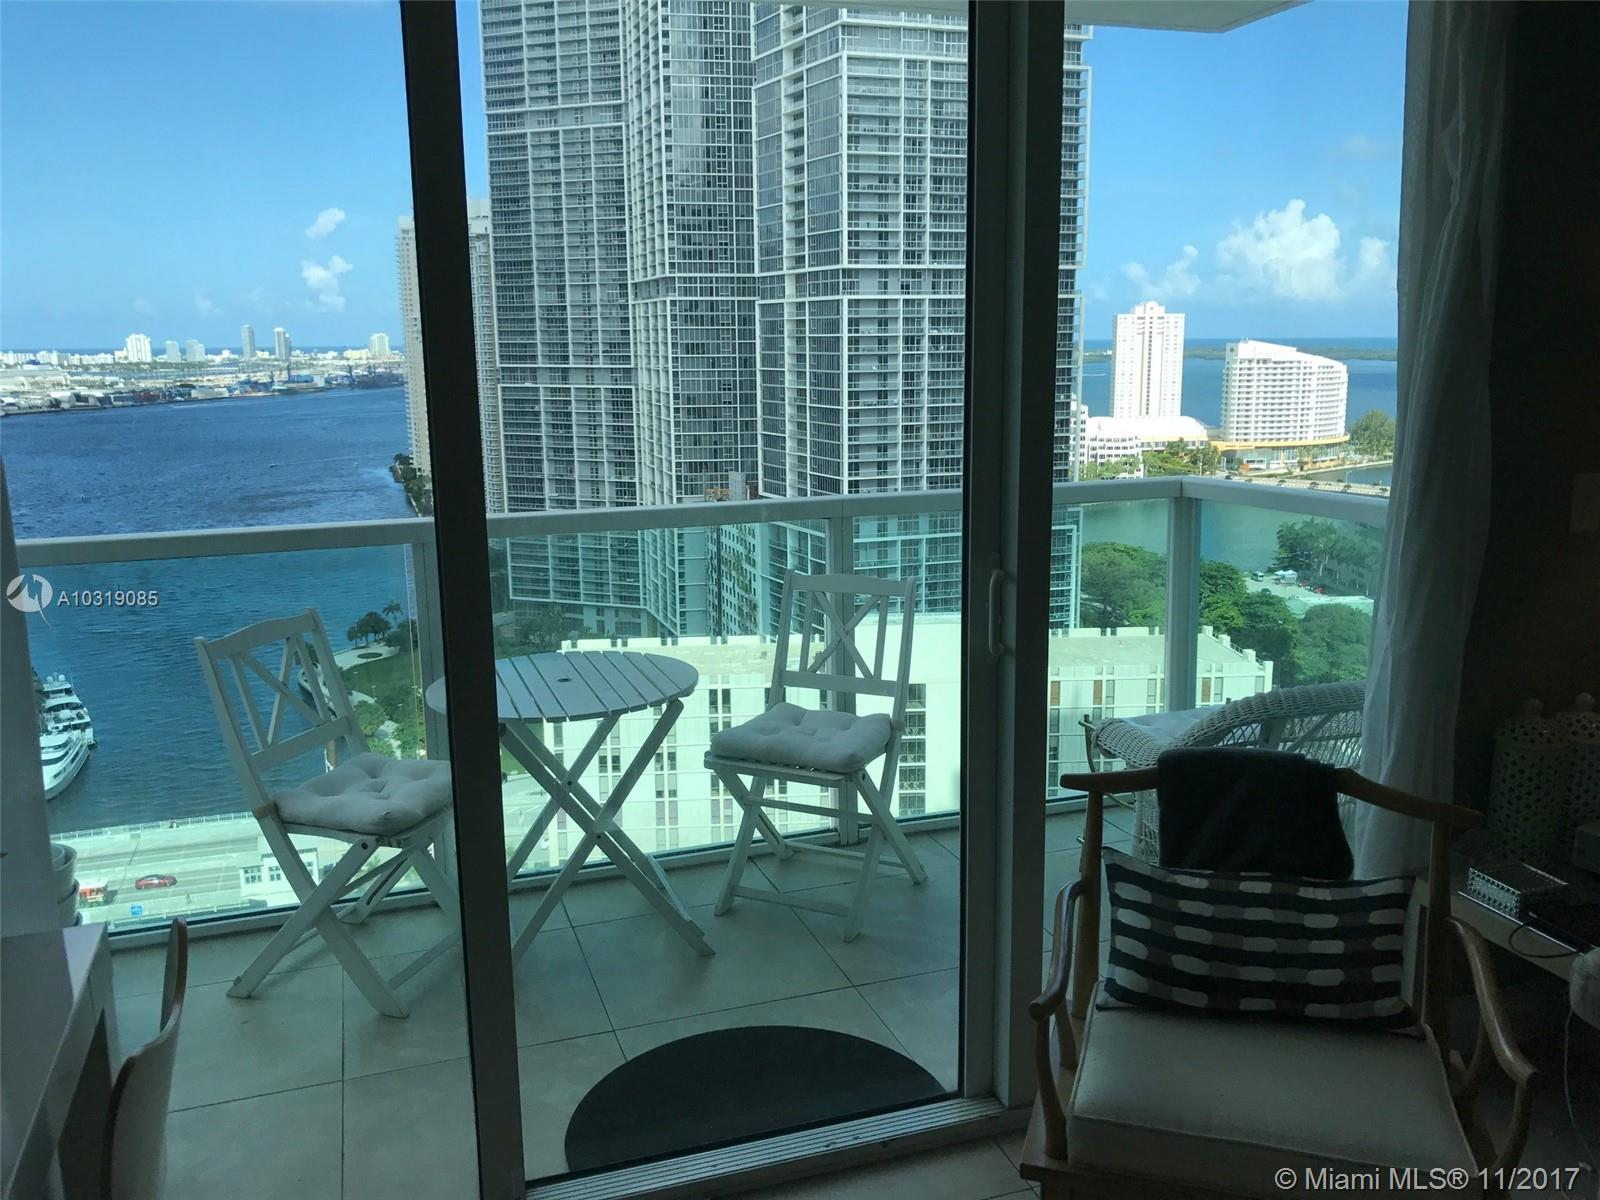 Brickell on the River North image #1